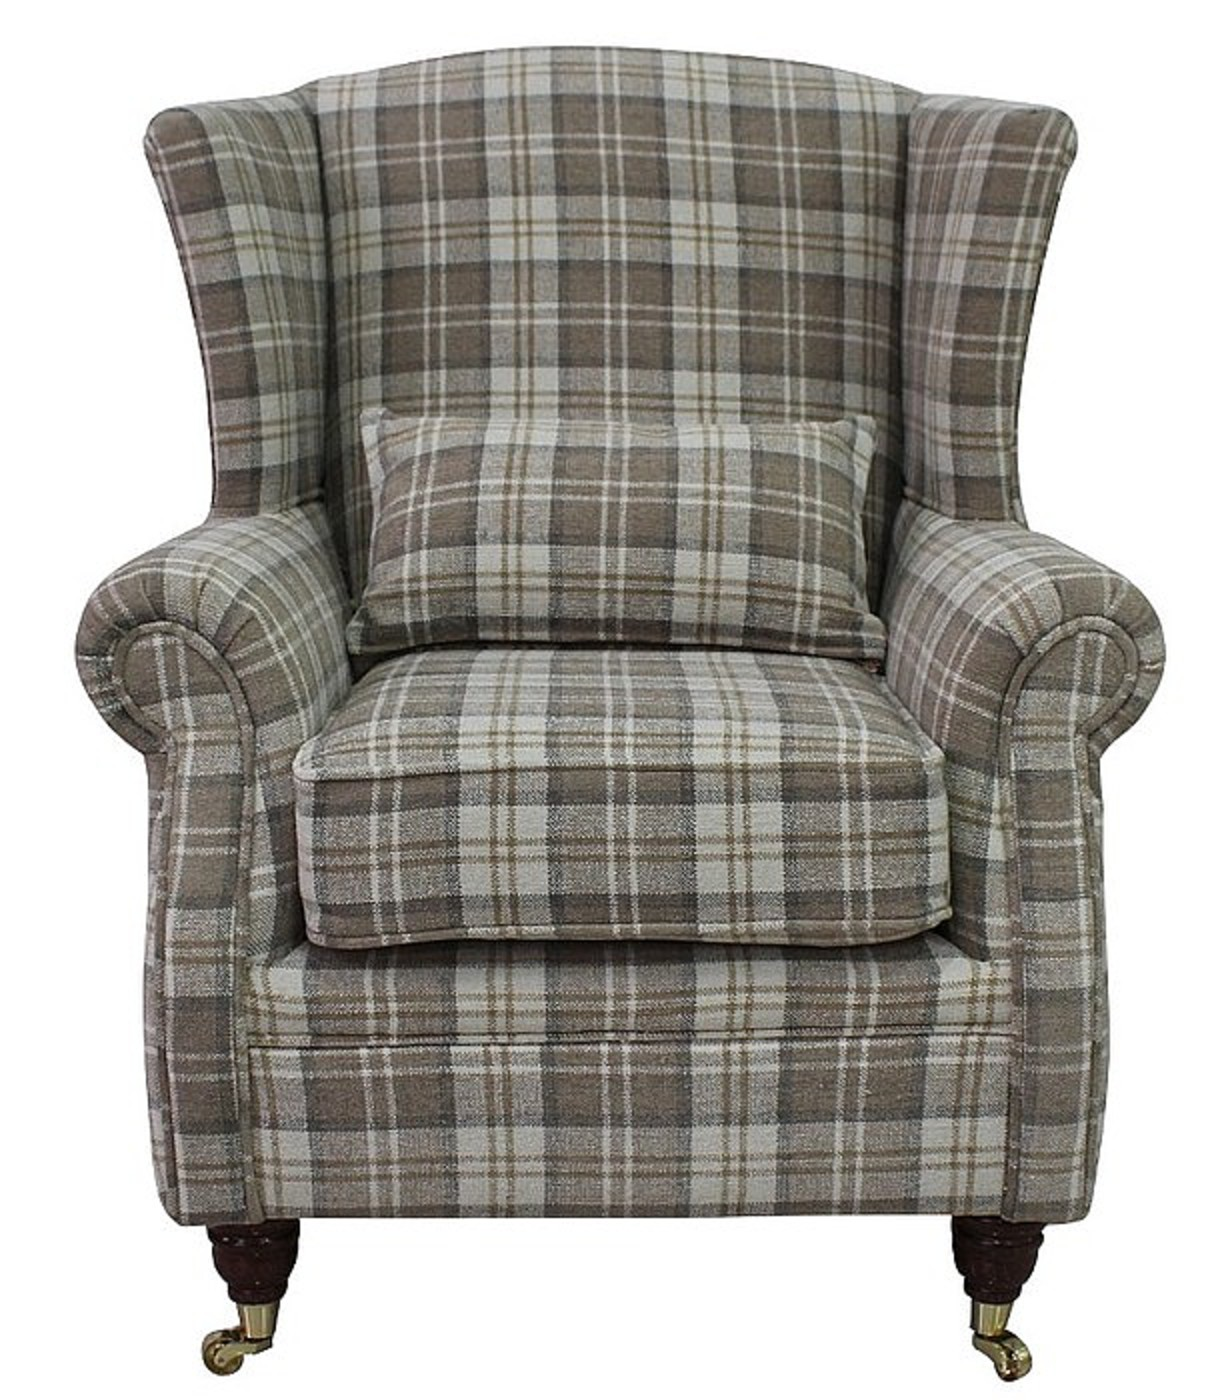 sc 1 st  Winchester Leather & Wing Chair Fireside High Back Armchair Lana Beige Check Fabric